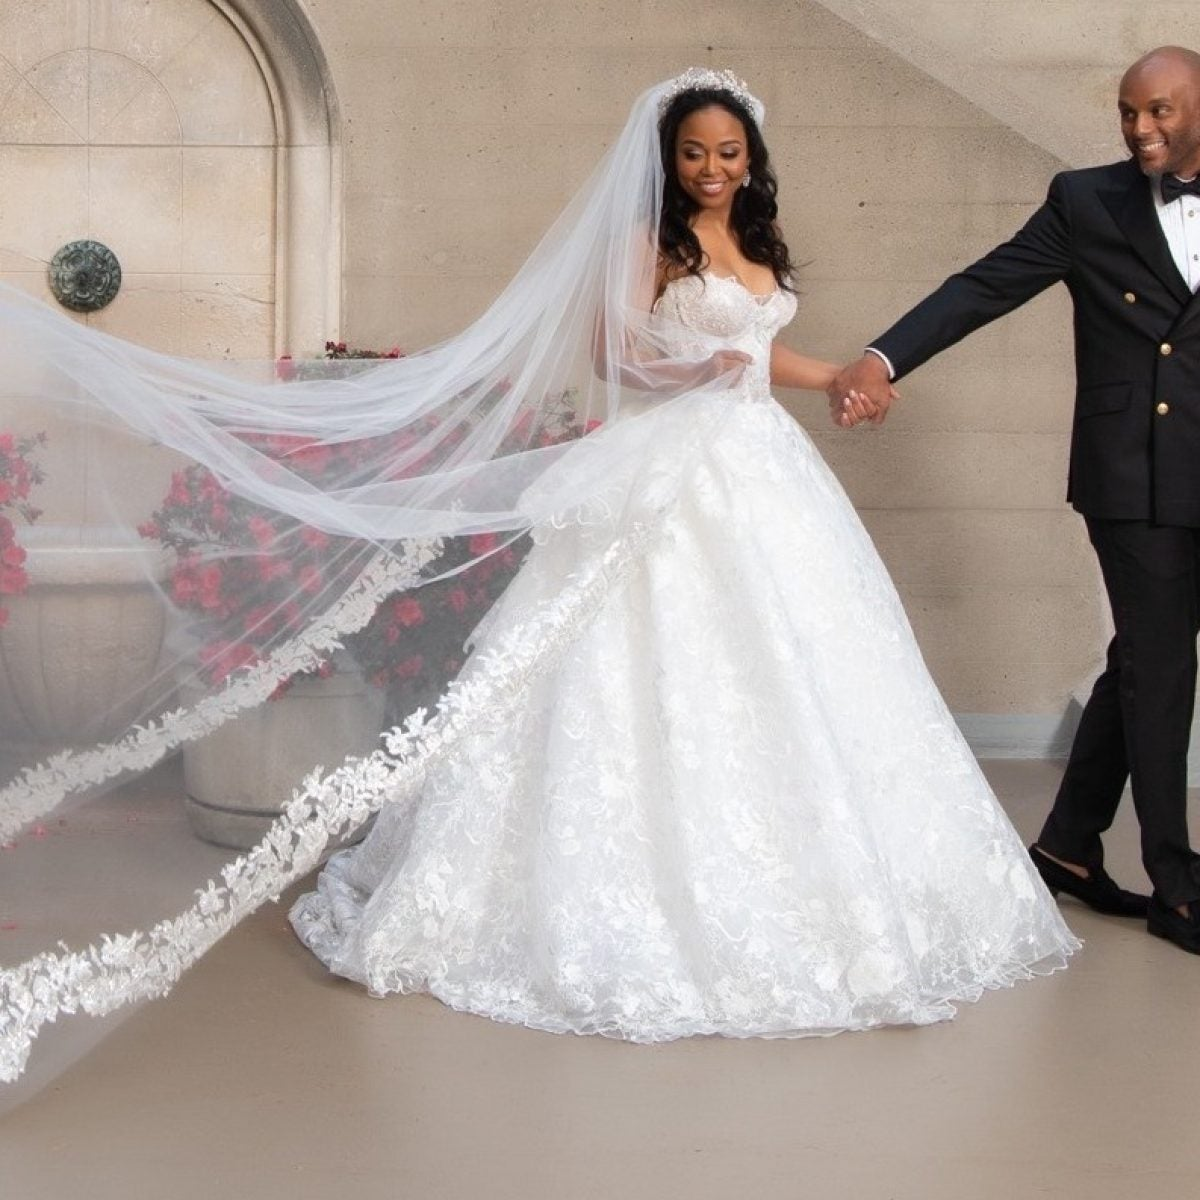 Bridal Bliss Exclusive: Kenny Lattimore And Judge Faith's Sunny L.A. Wedding